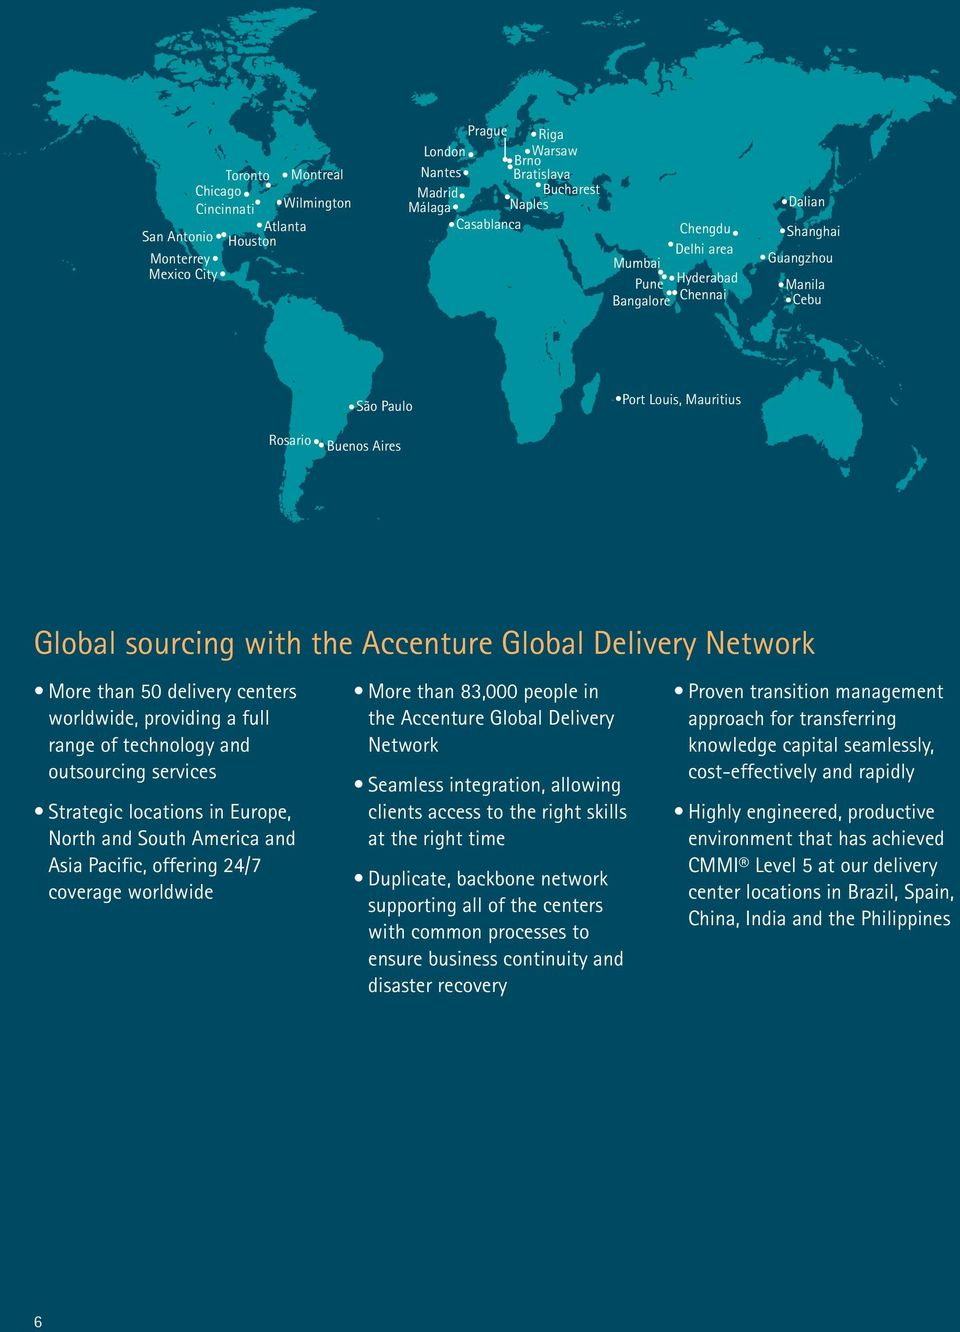 Network More than 50 delivery centers worldwide, providing a full range of technology and outsourcing services Strategic locations in Europe, North and South America and Asia Pacific, offering 24/7